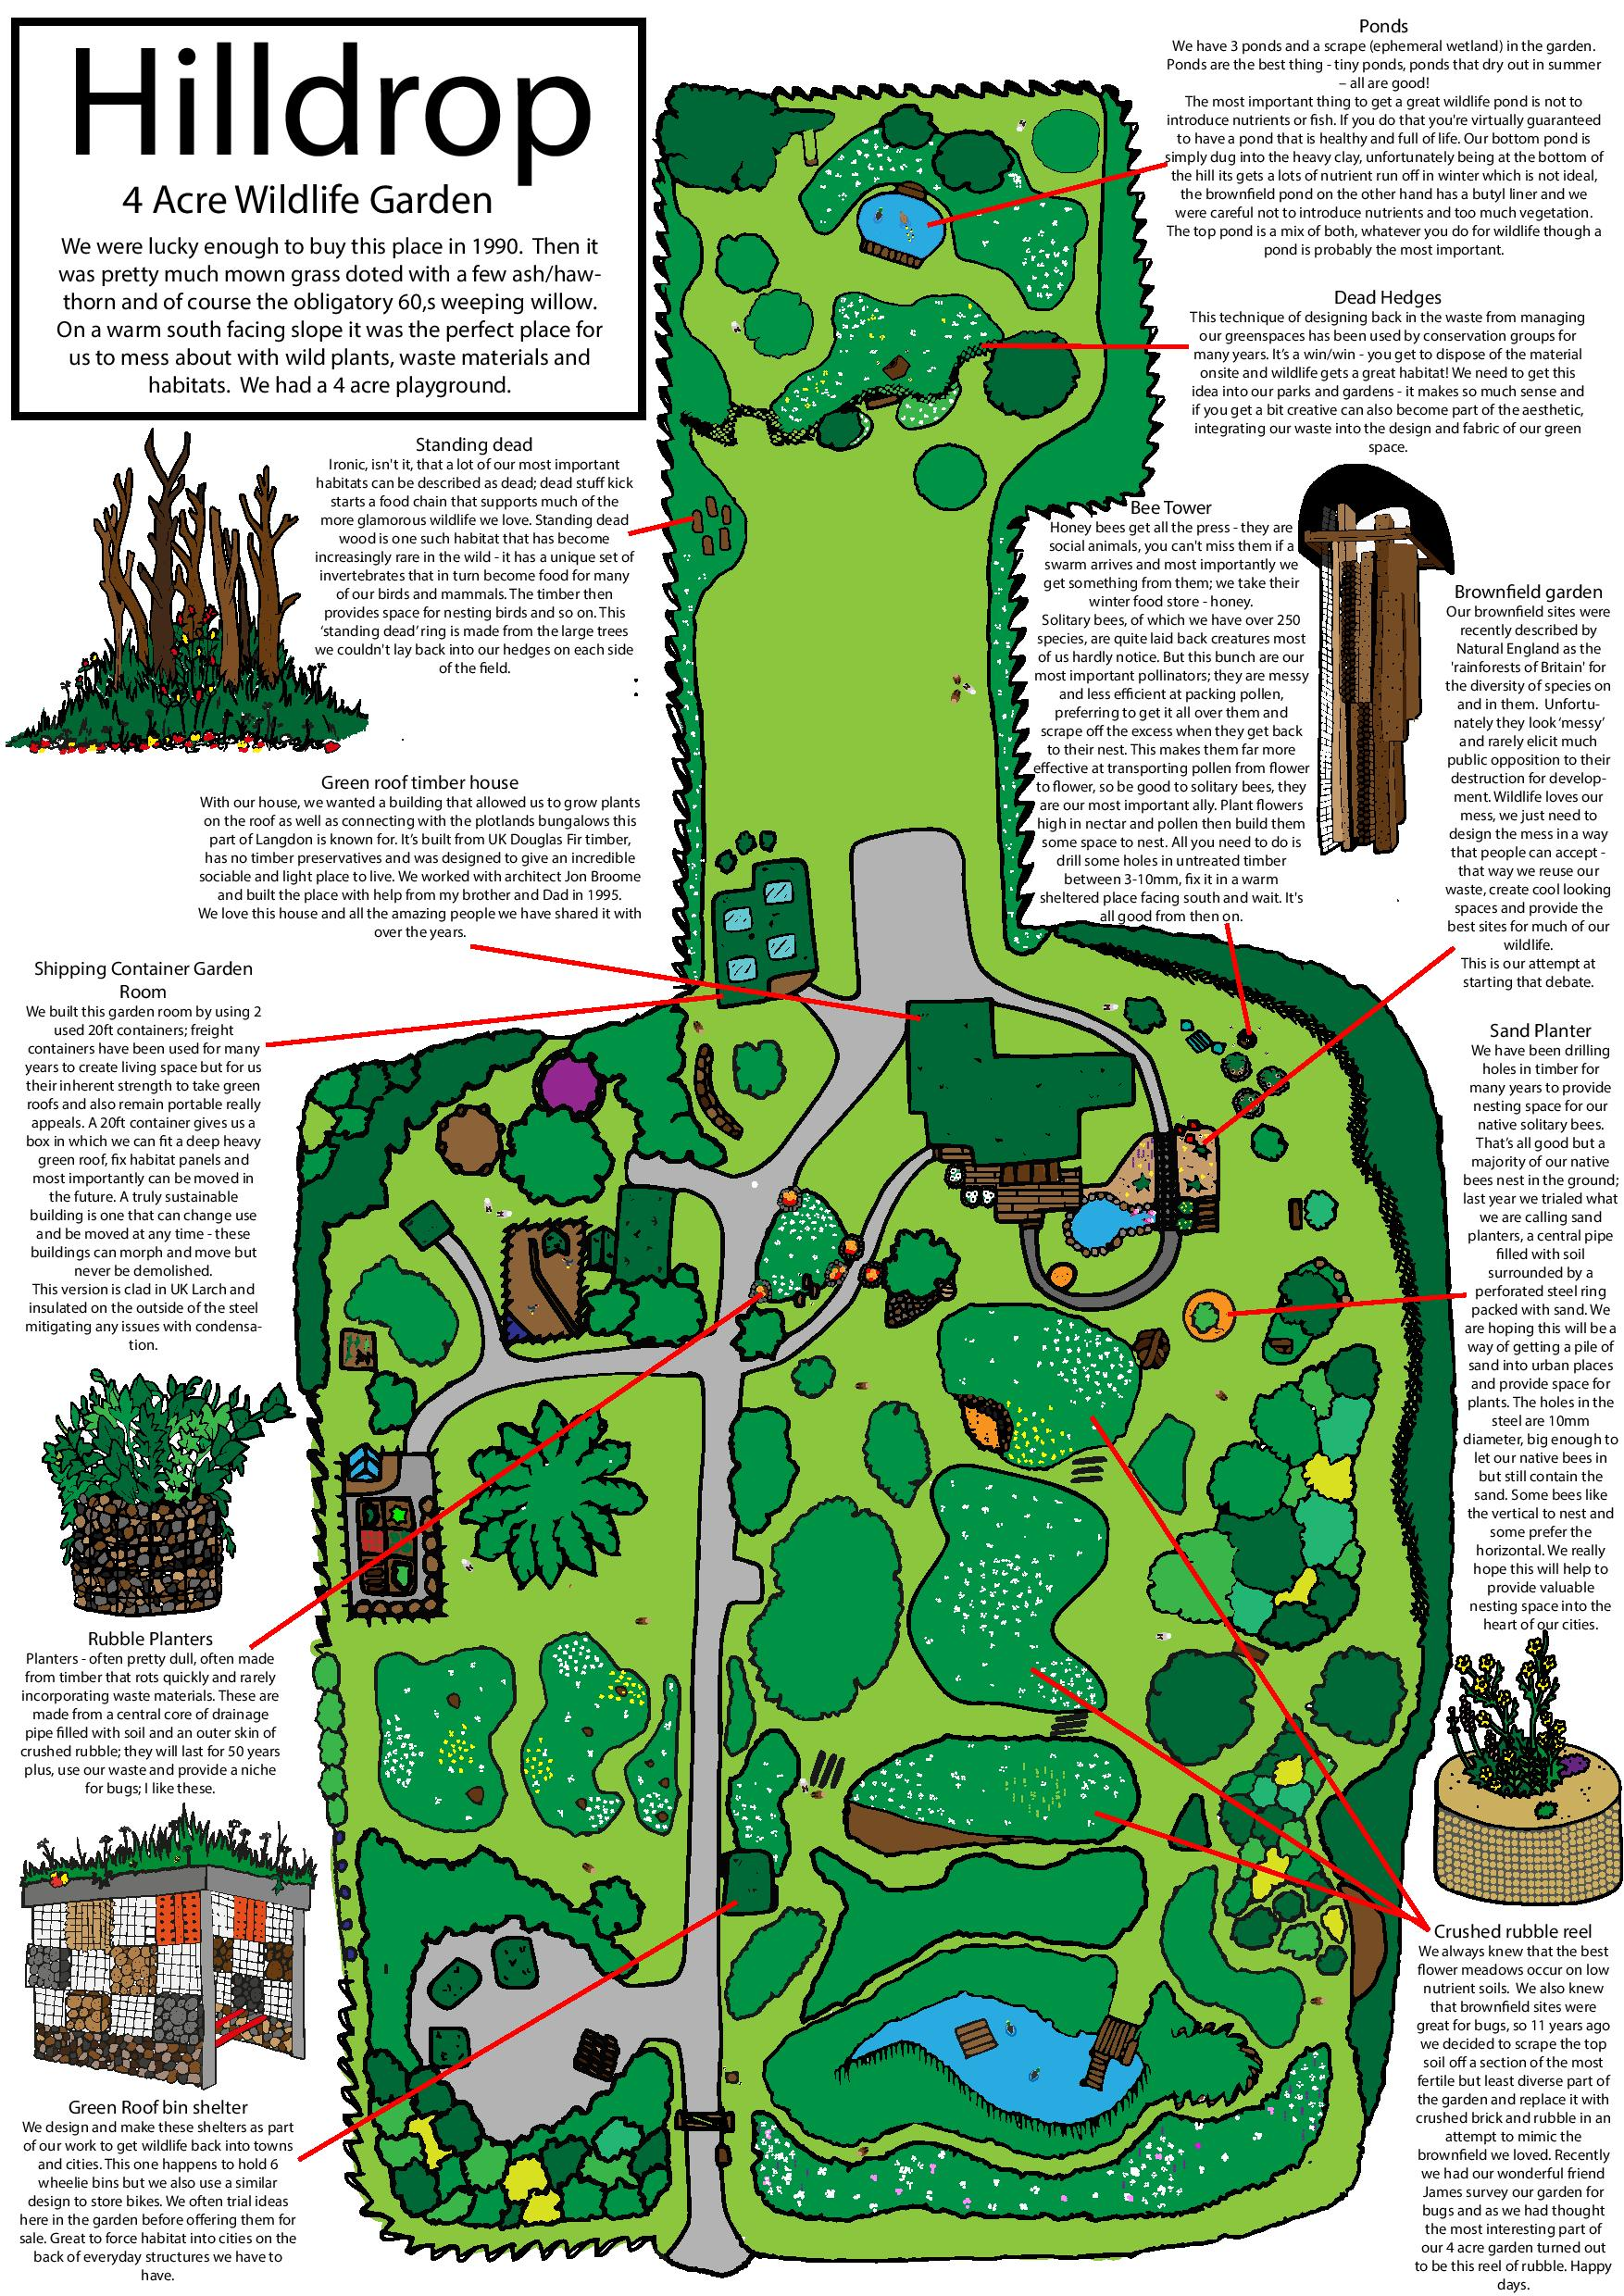 Hilldrop Gardens - 4 acres of wildlife and brownfield landscapes